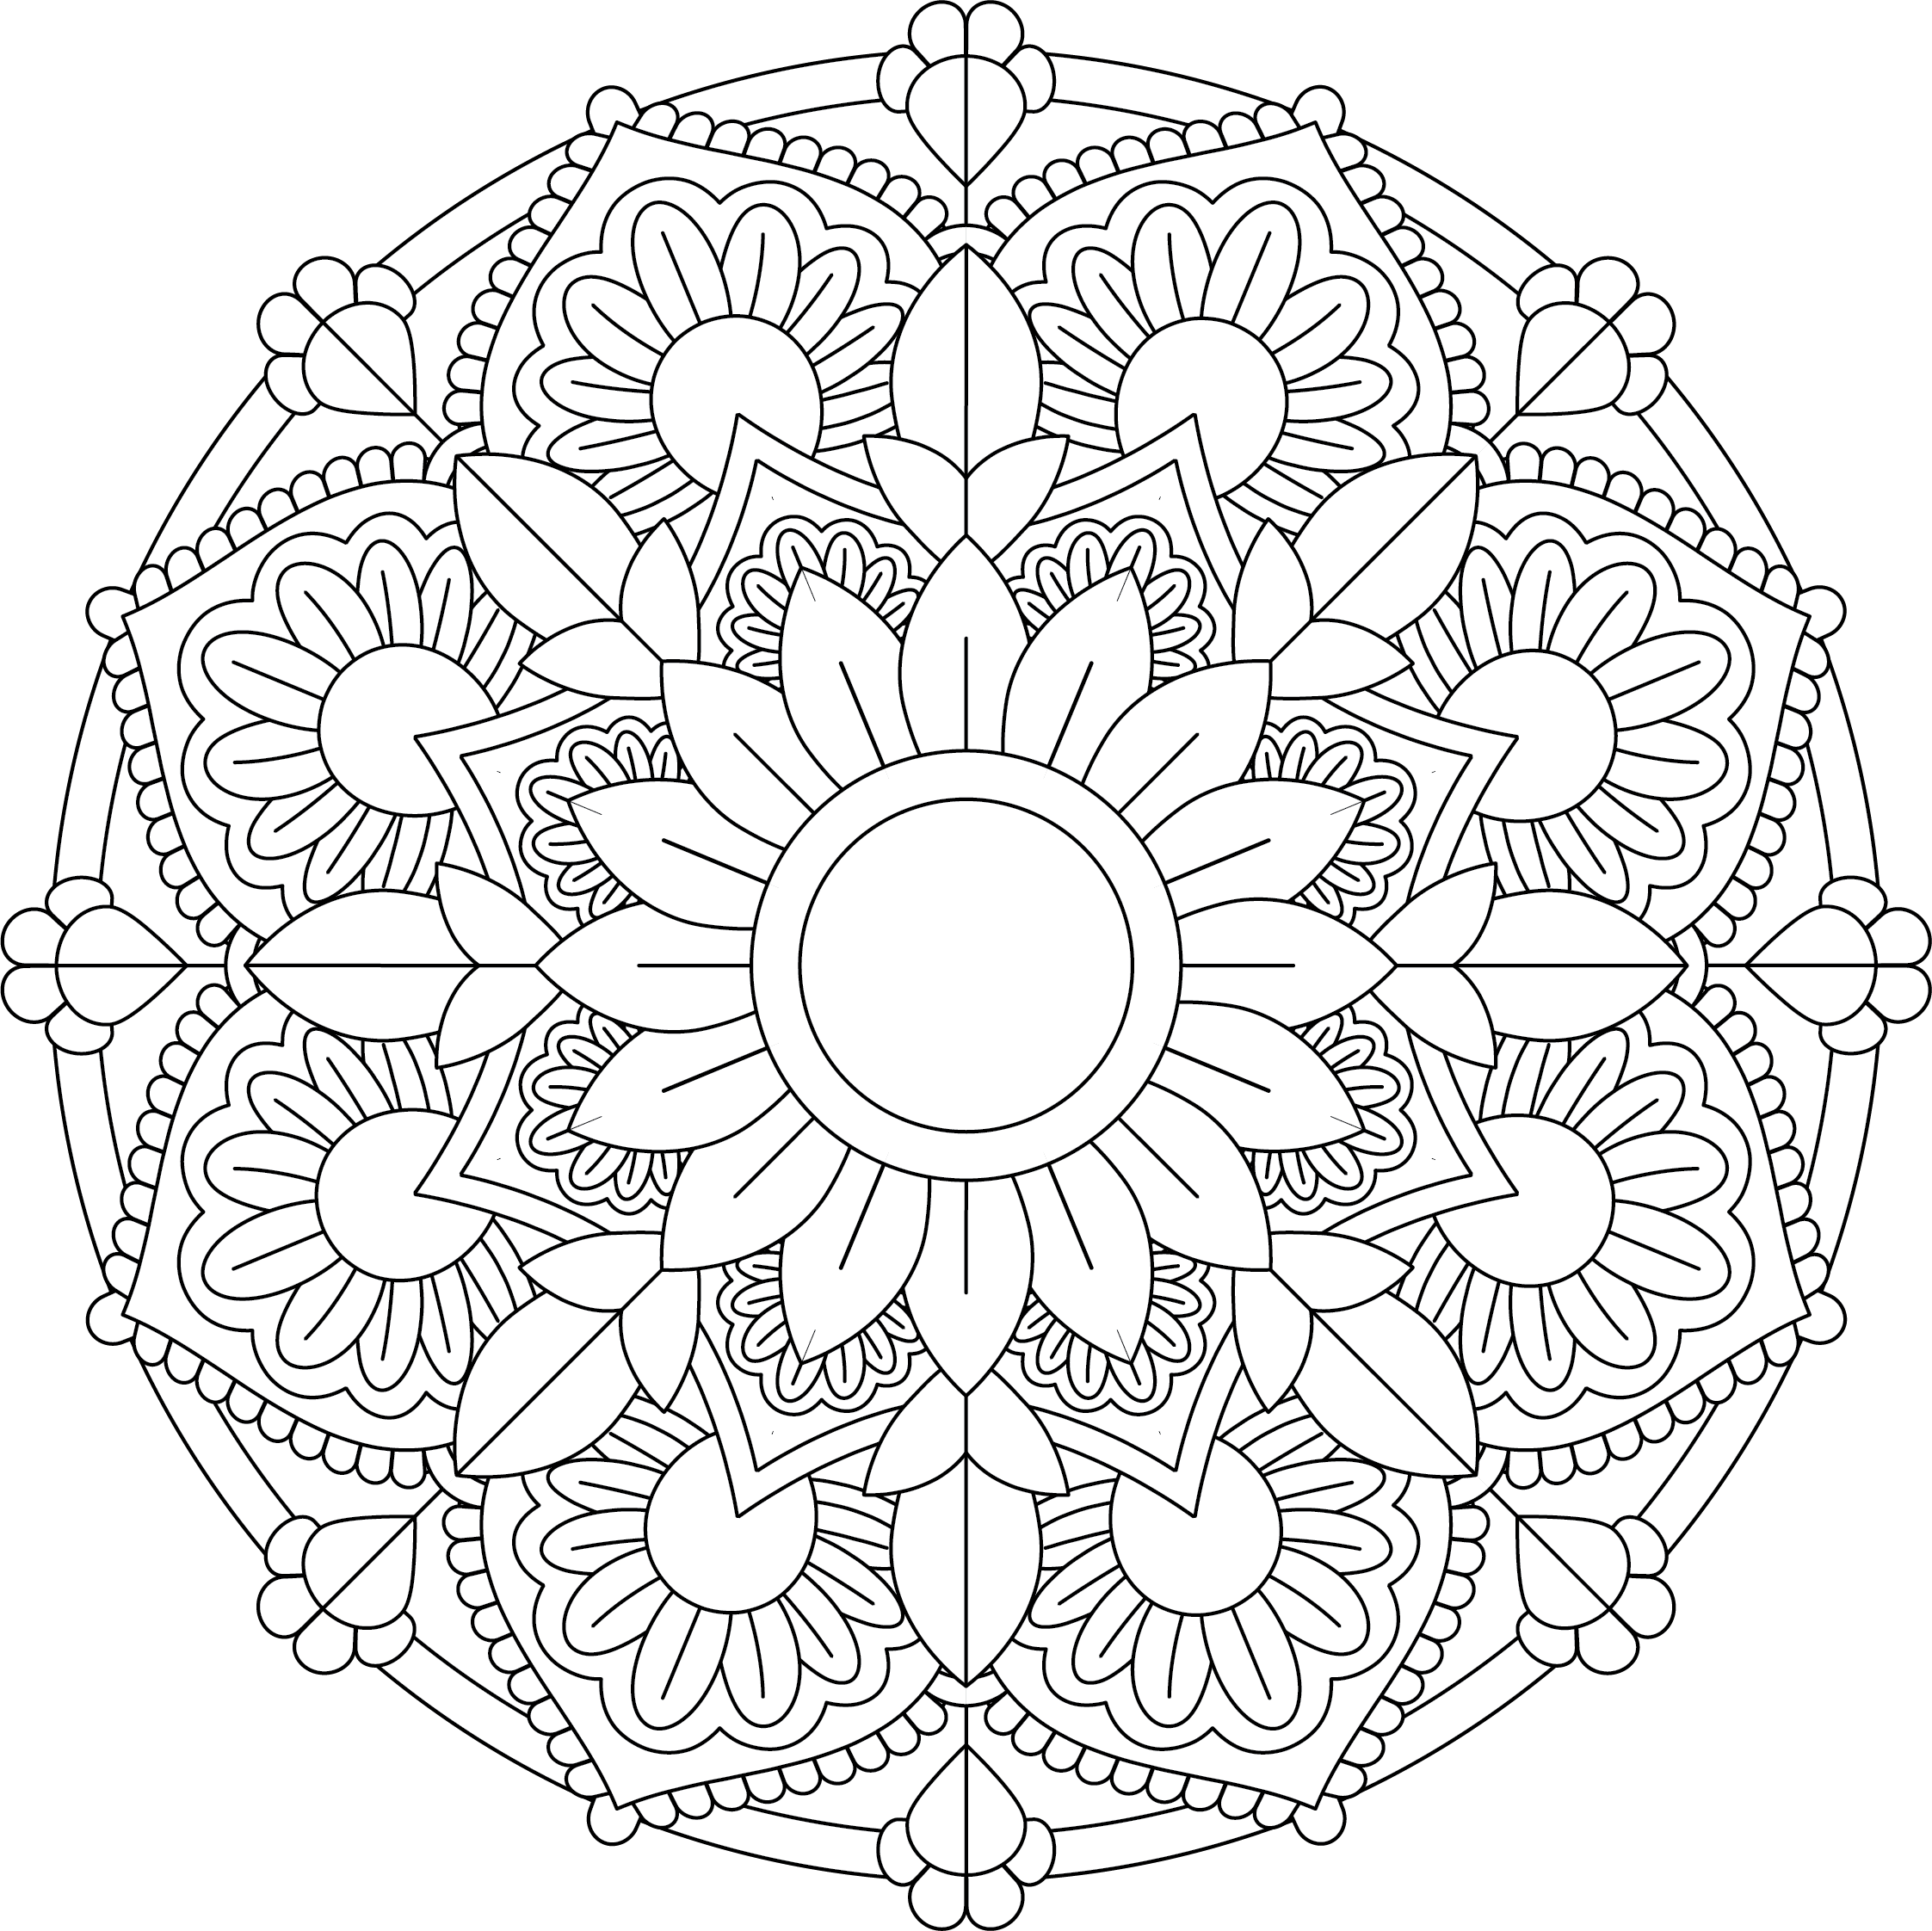 Mandala Monday Free Design To Download And Colour 2019 - 9